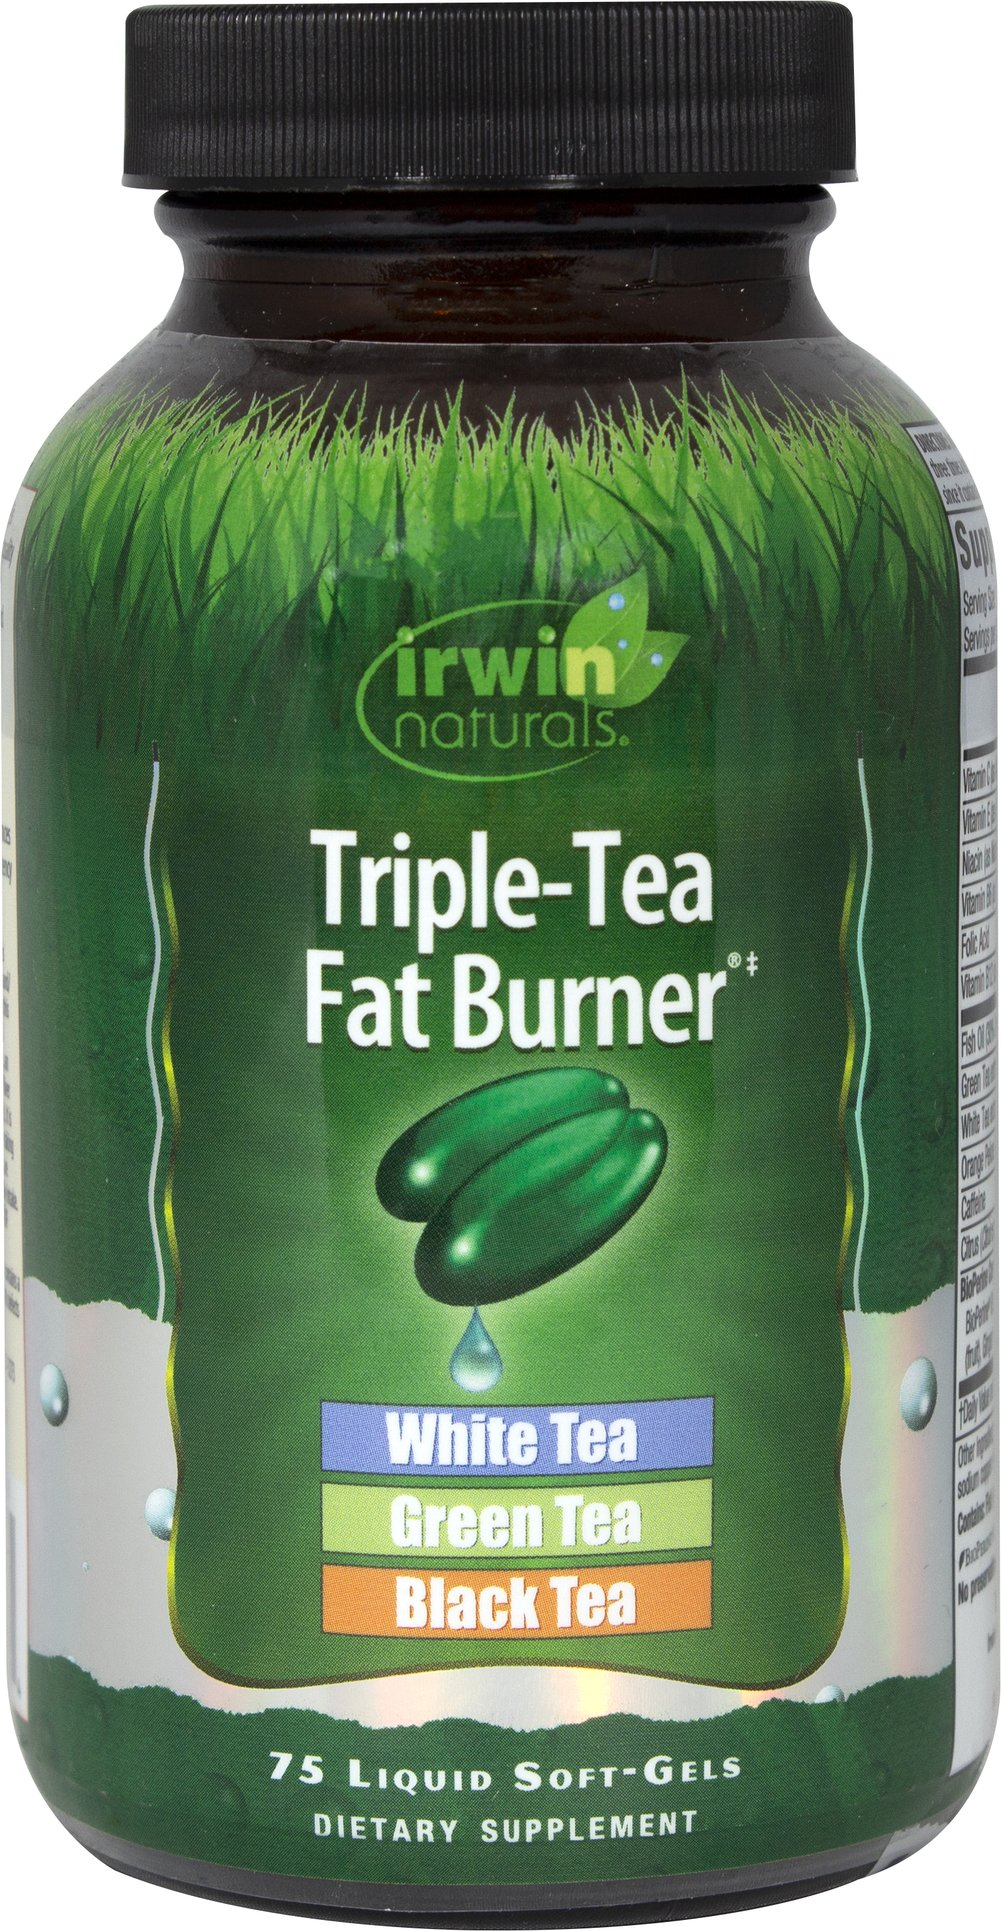 Irwin Naturals� Irwin Naturals Triple Tea Fat Burner-75 Softgels for dieting the healthy way